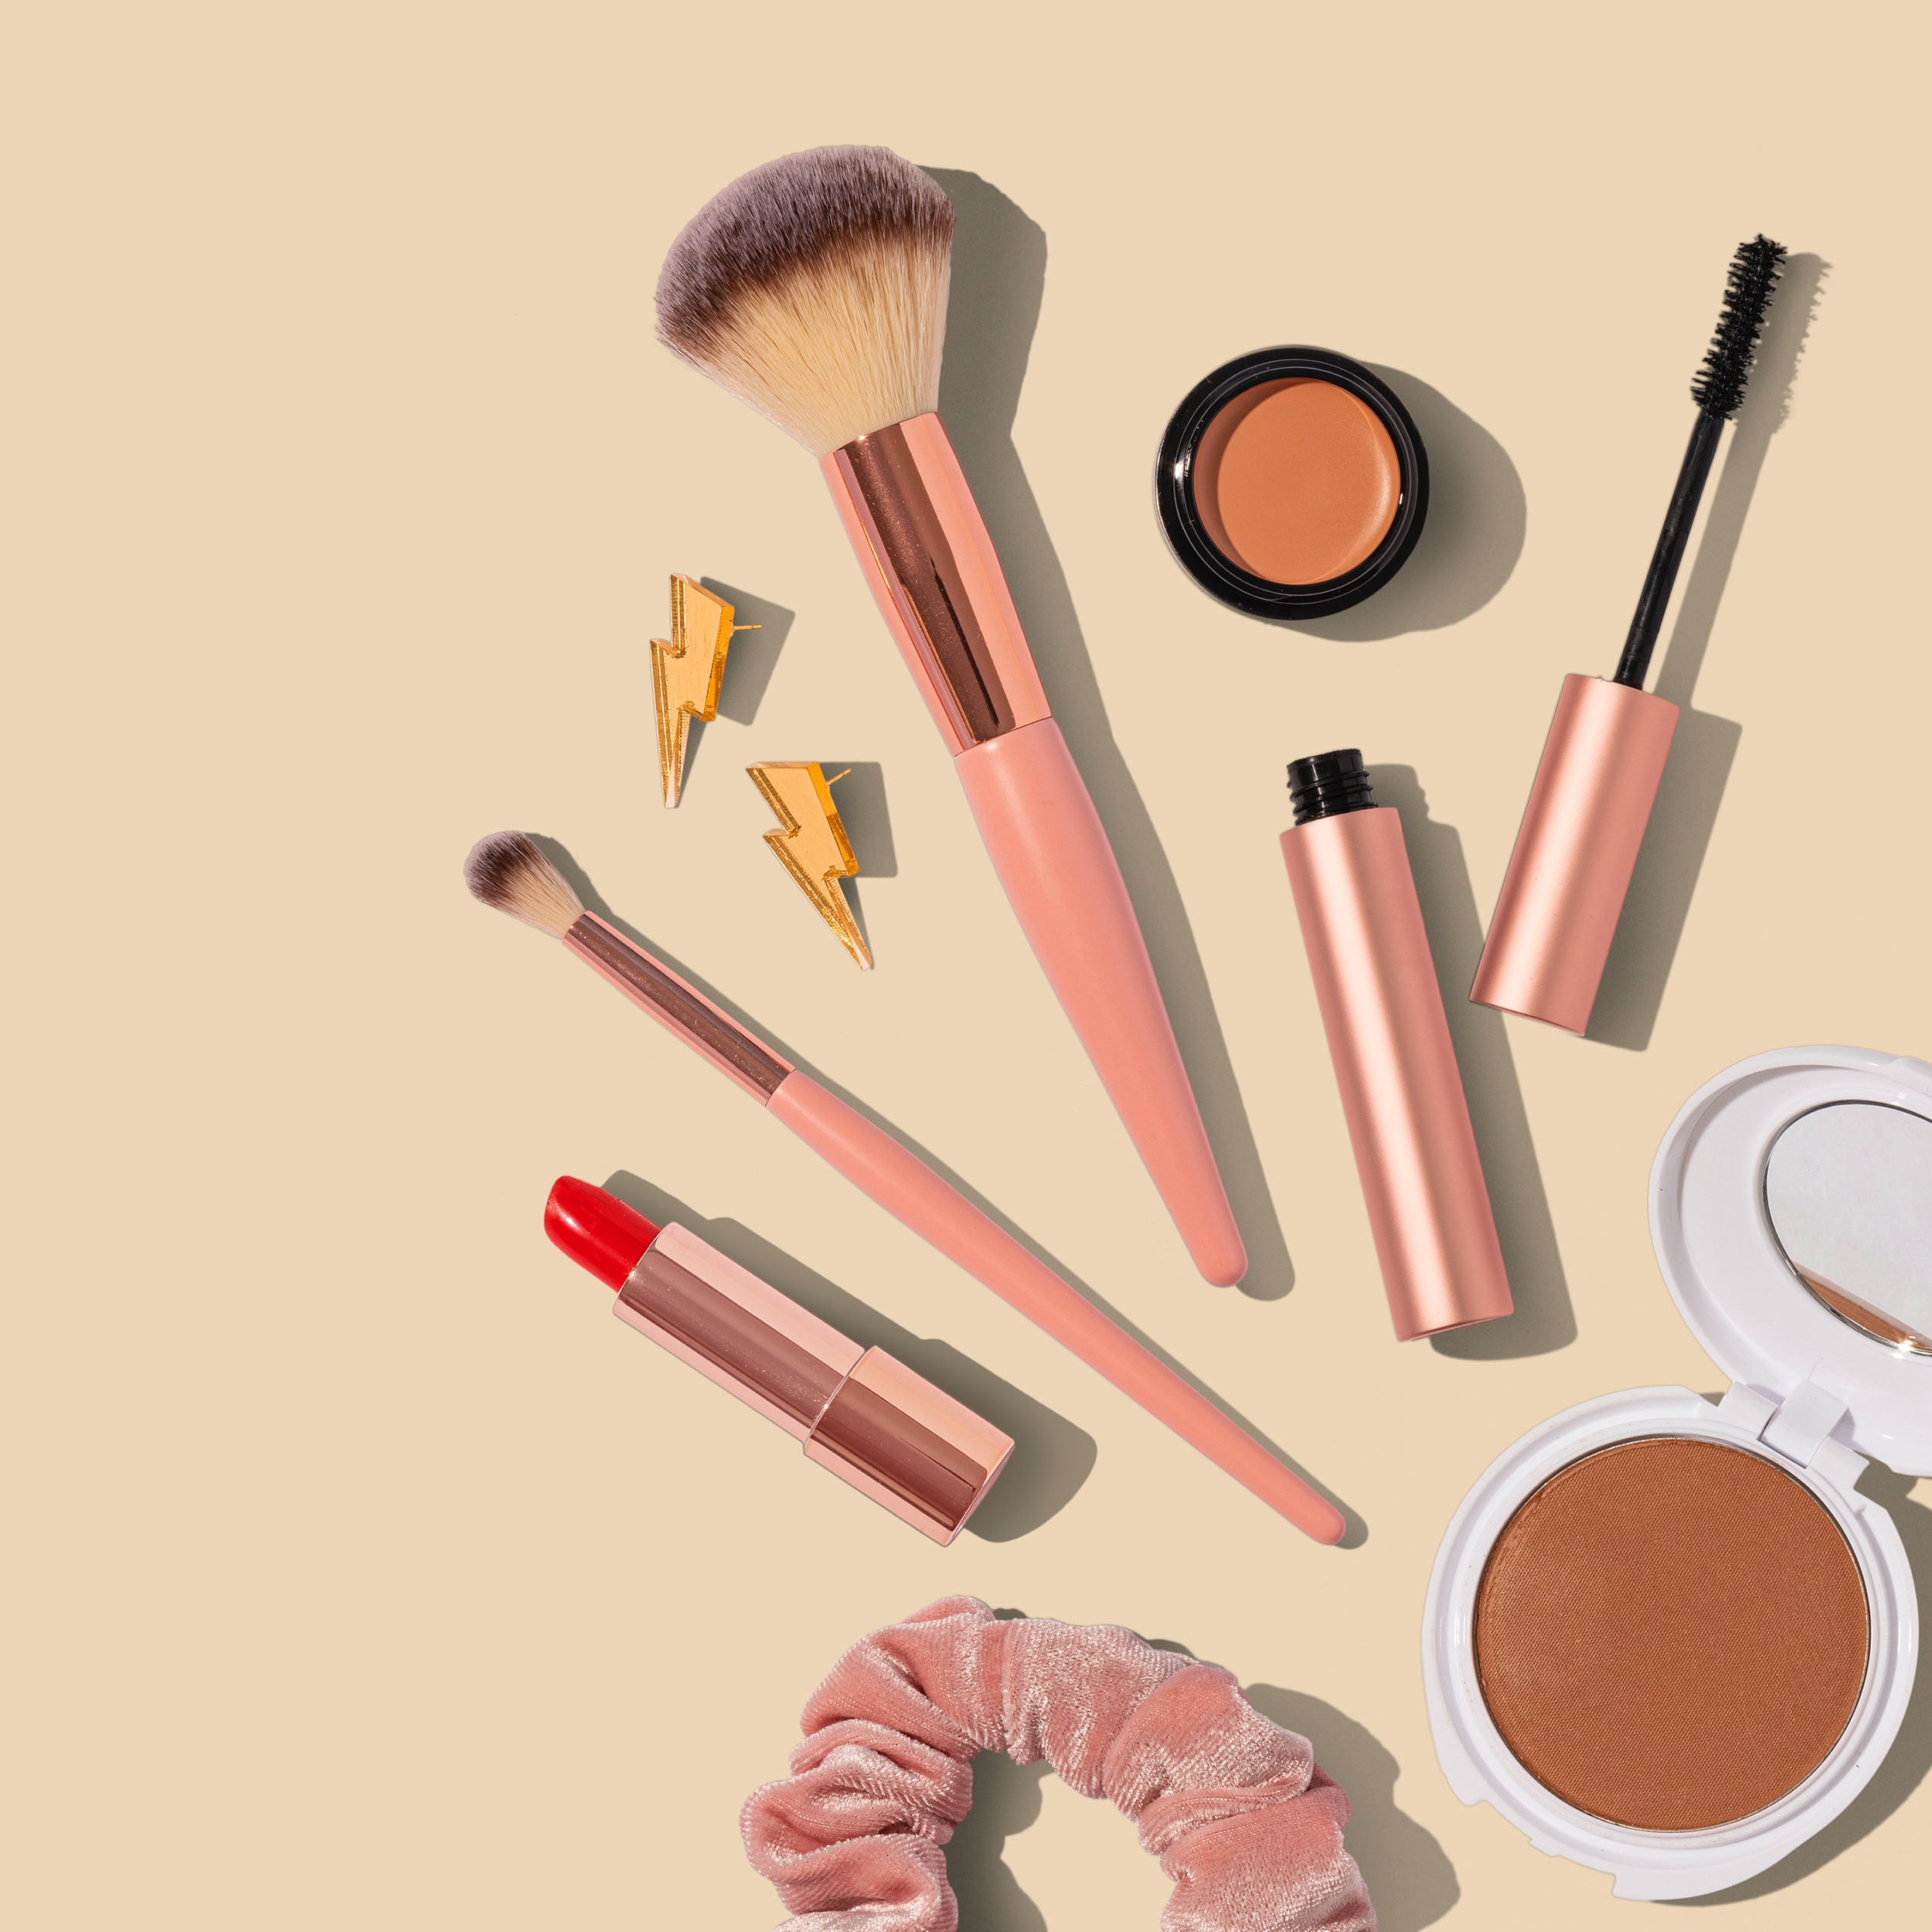 How is beauty related to health?